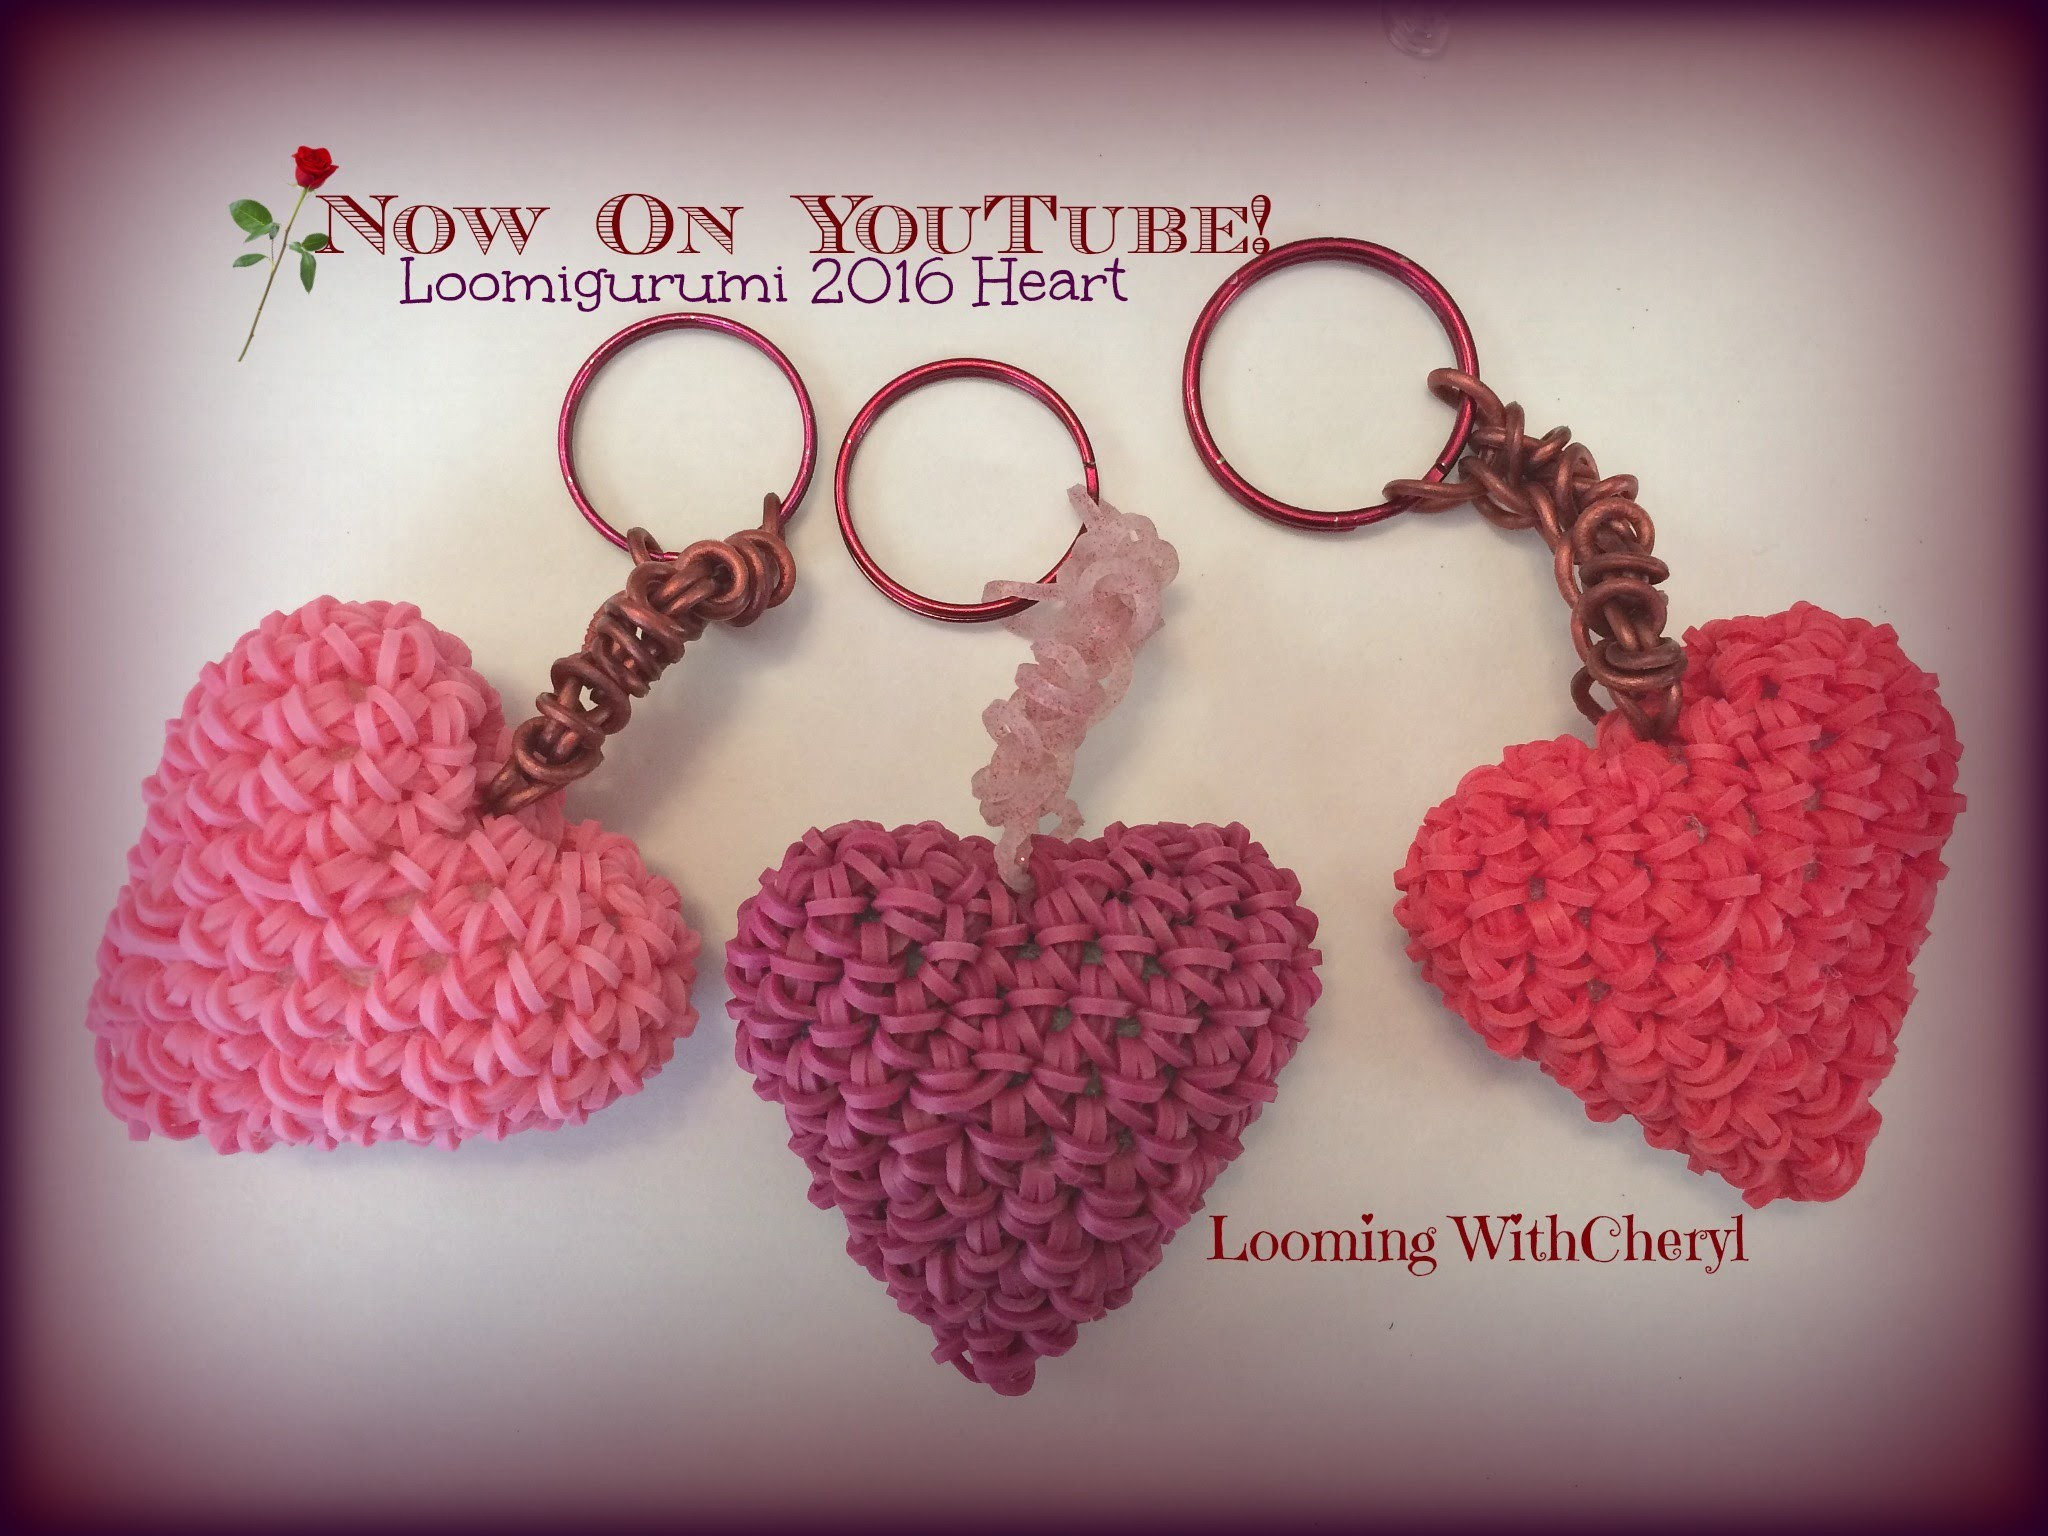 Rainbow Loom 2016 Heart Charm OR Key Chain Loomigurumi Amigurumi Hook Only Сердце Лумигуруми